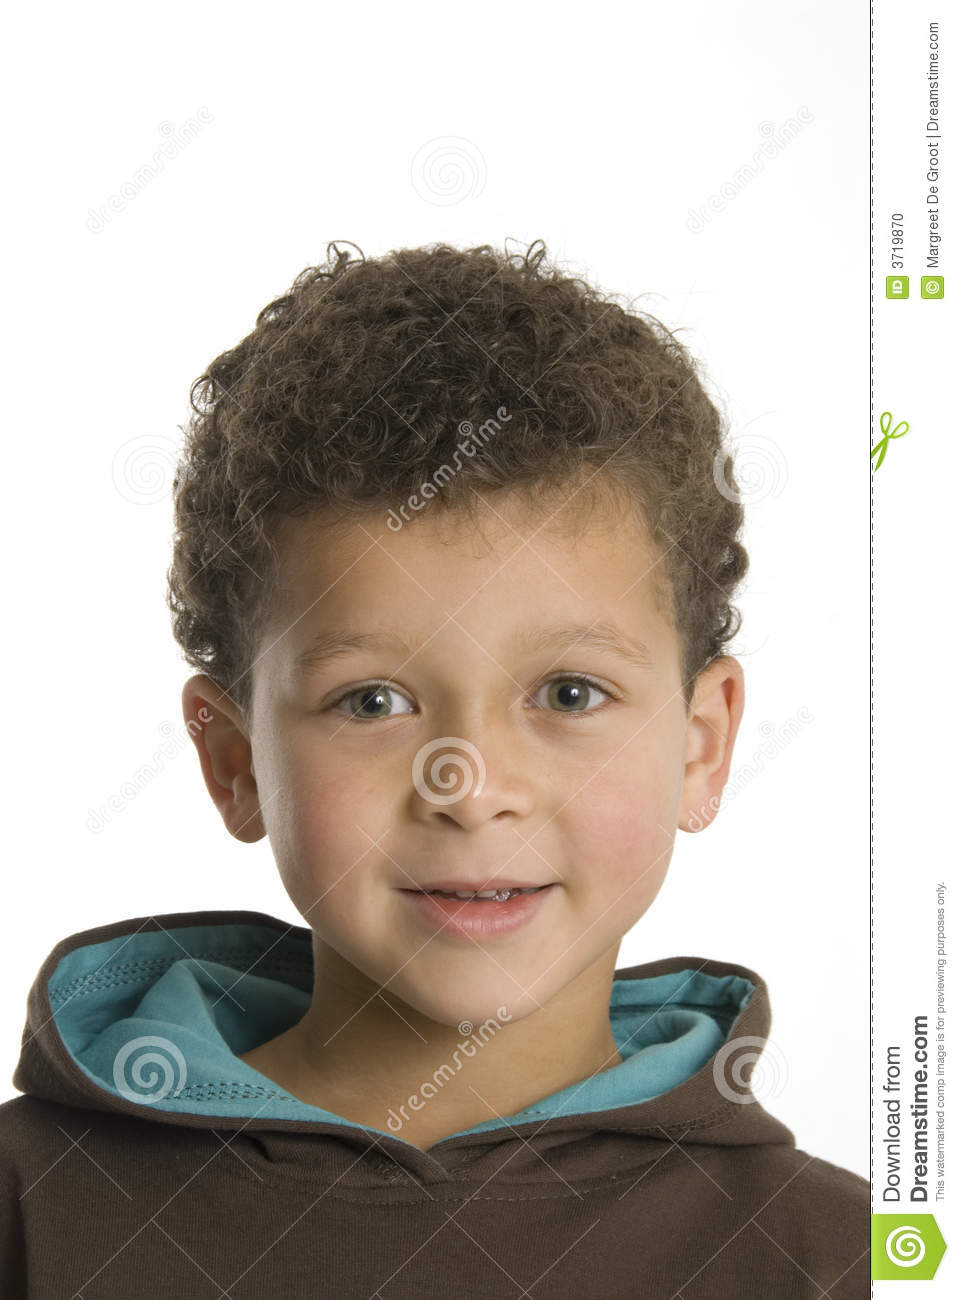 Cute Six Year Old Boy Stock Photo - Image: 3719870